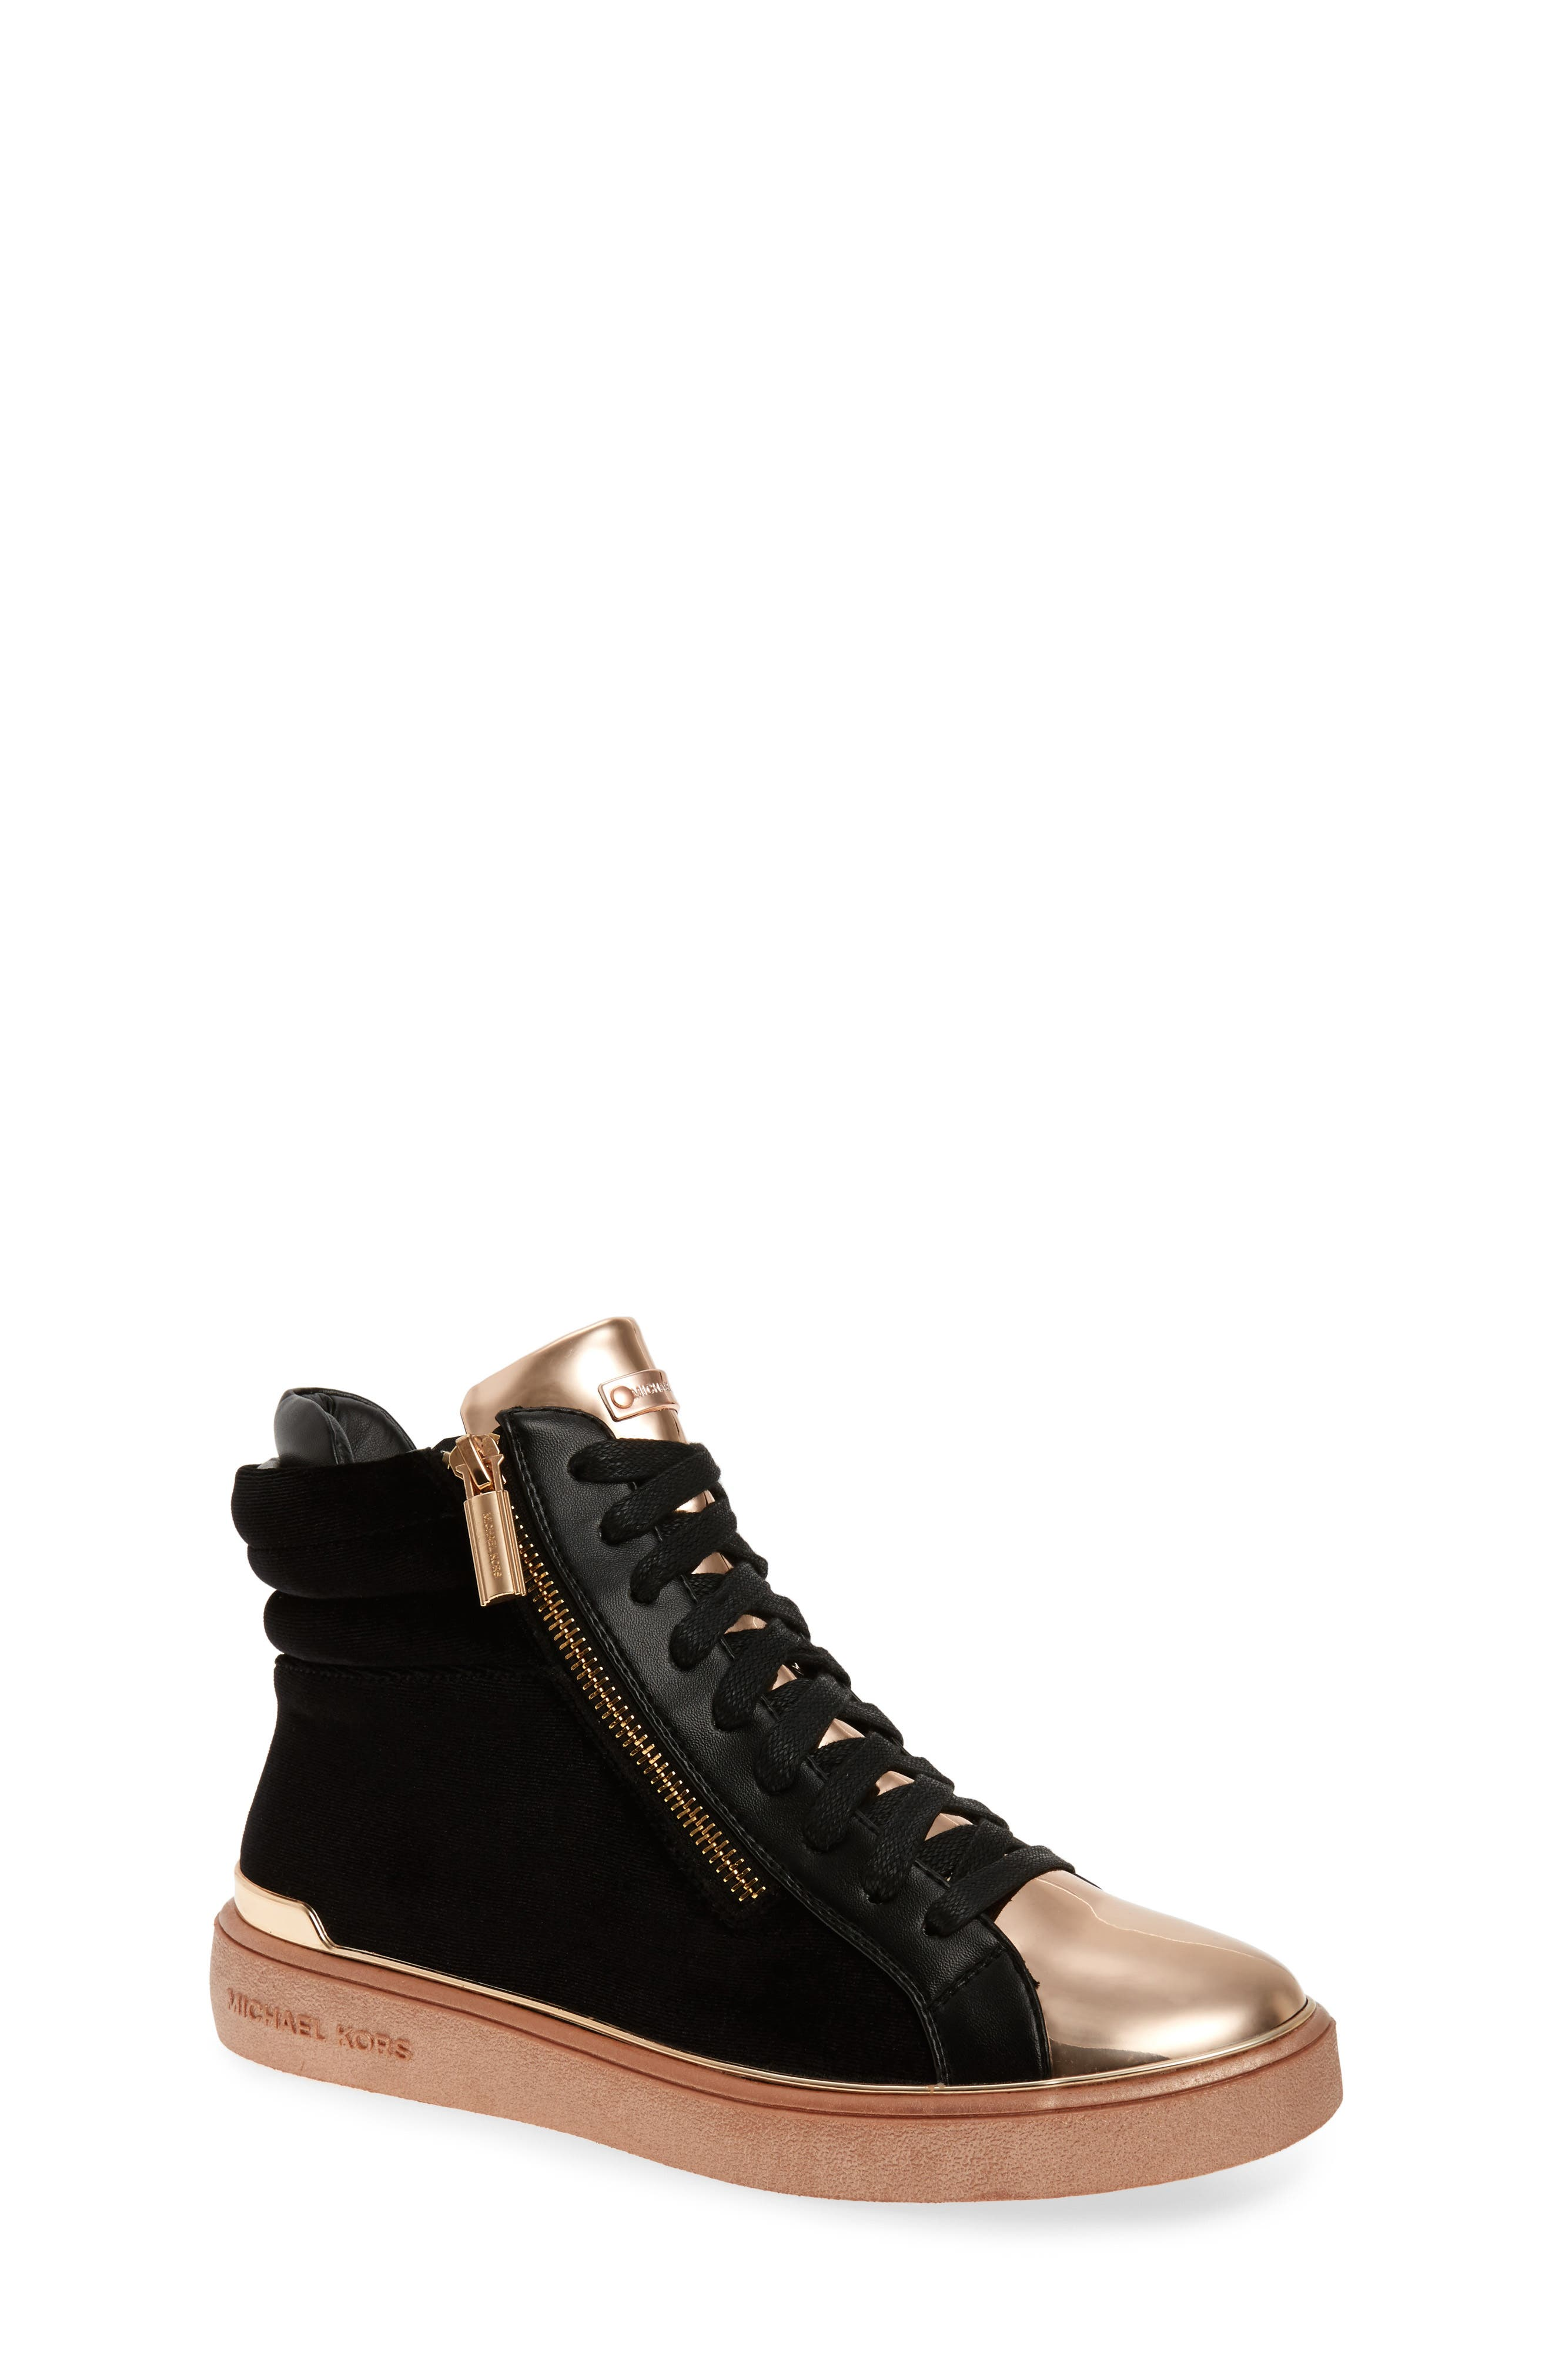 Ivy Blue High Top Sneaker,                         Main,                         color,